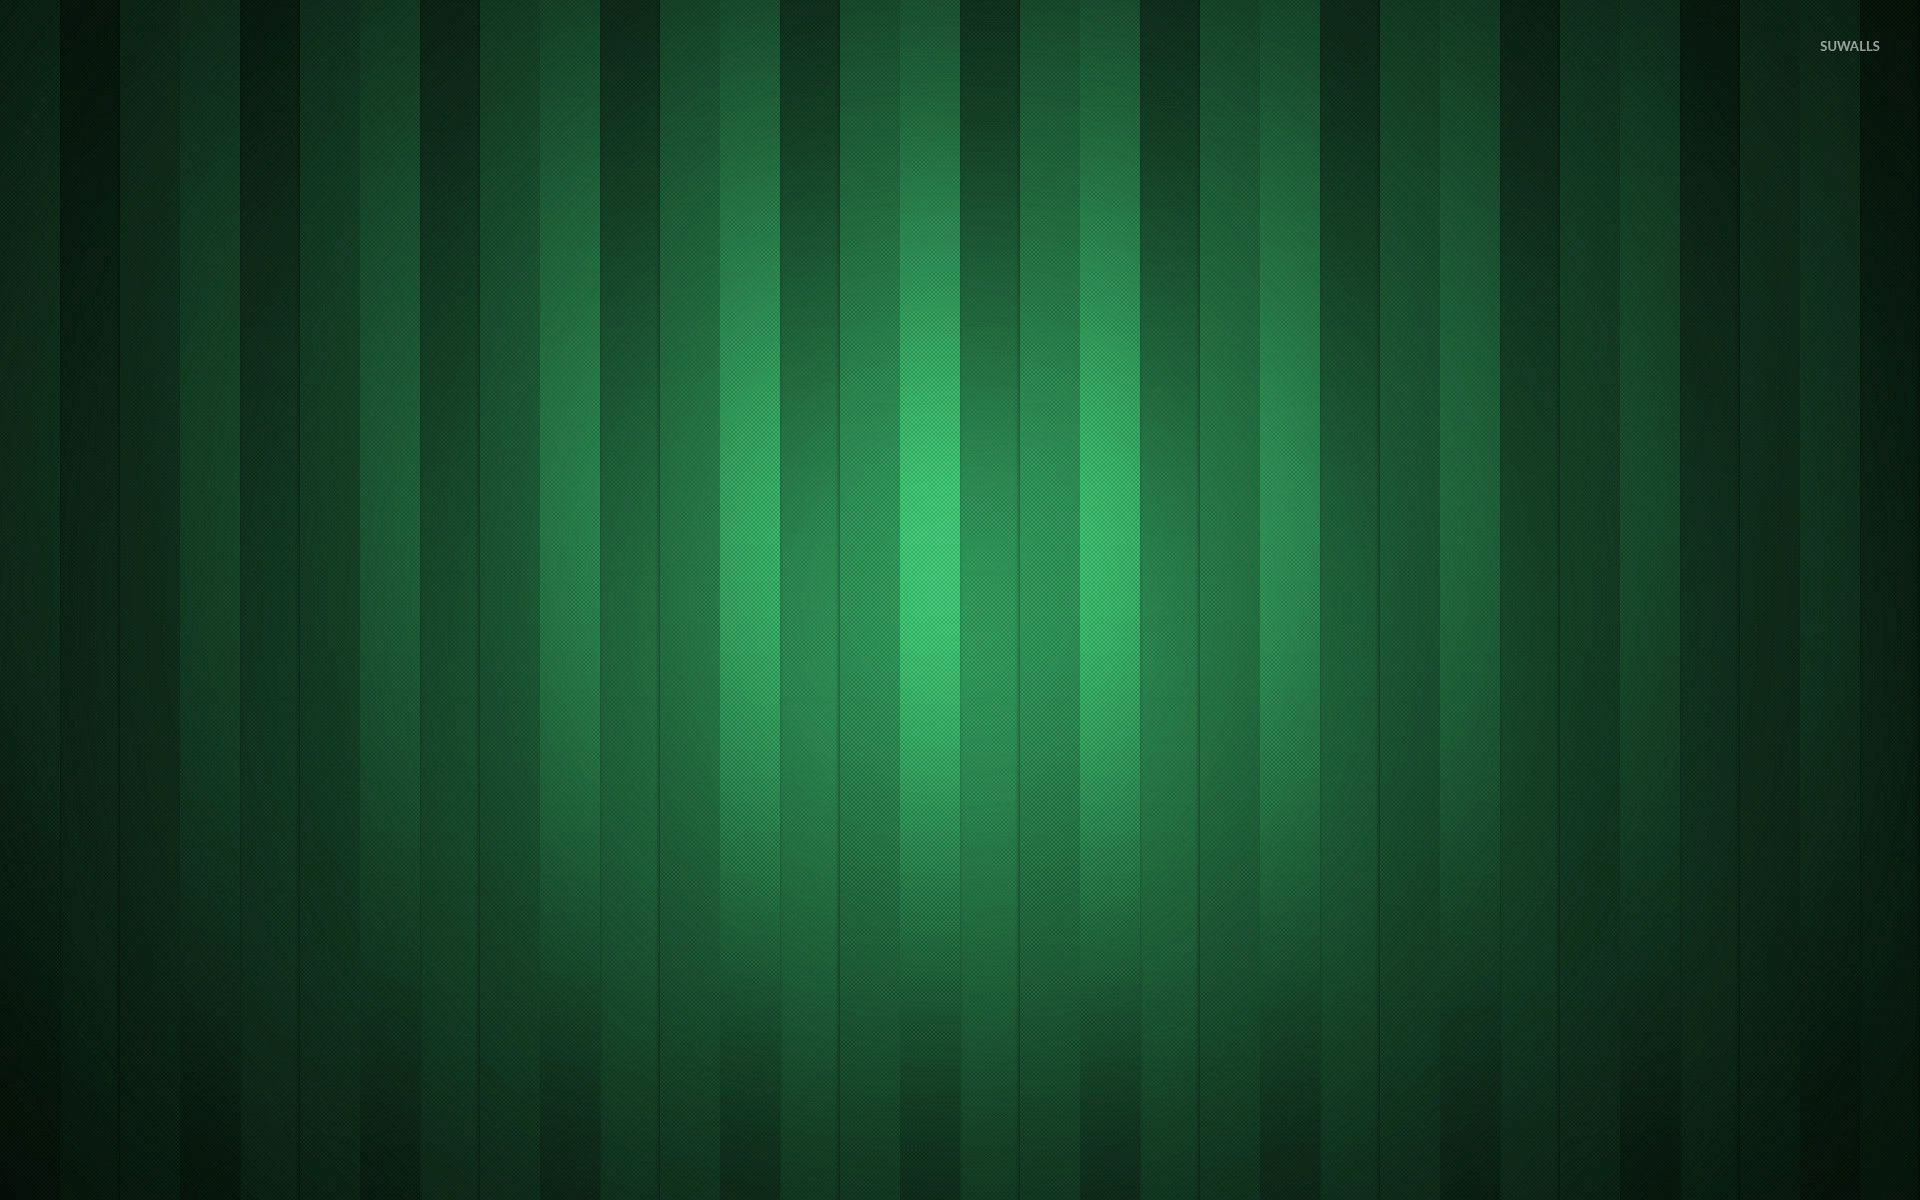 Green stripes [2] wallpaper Abstract wallpapers